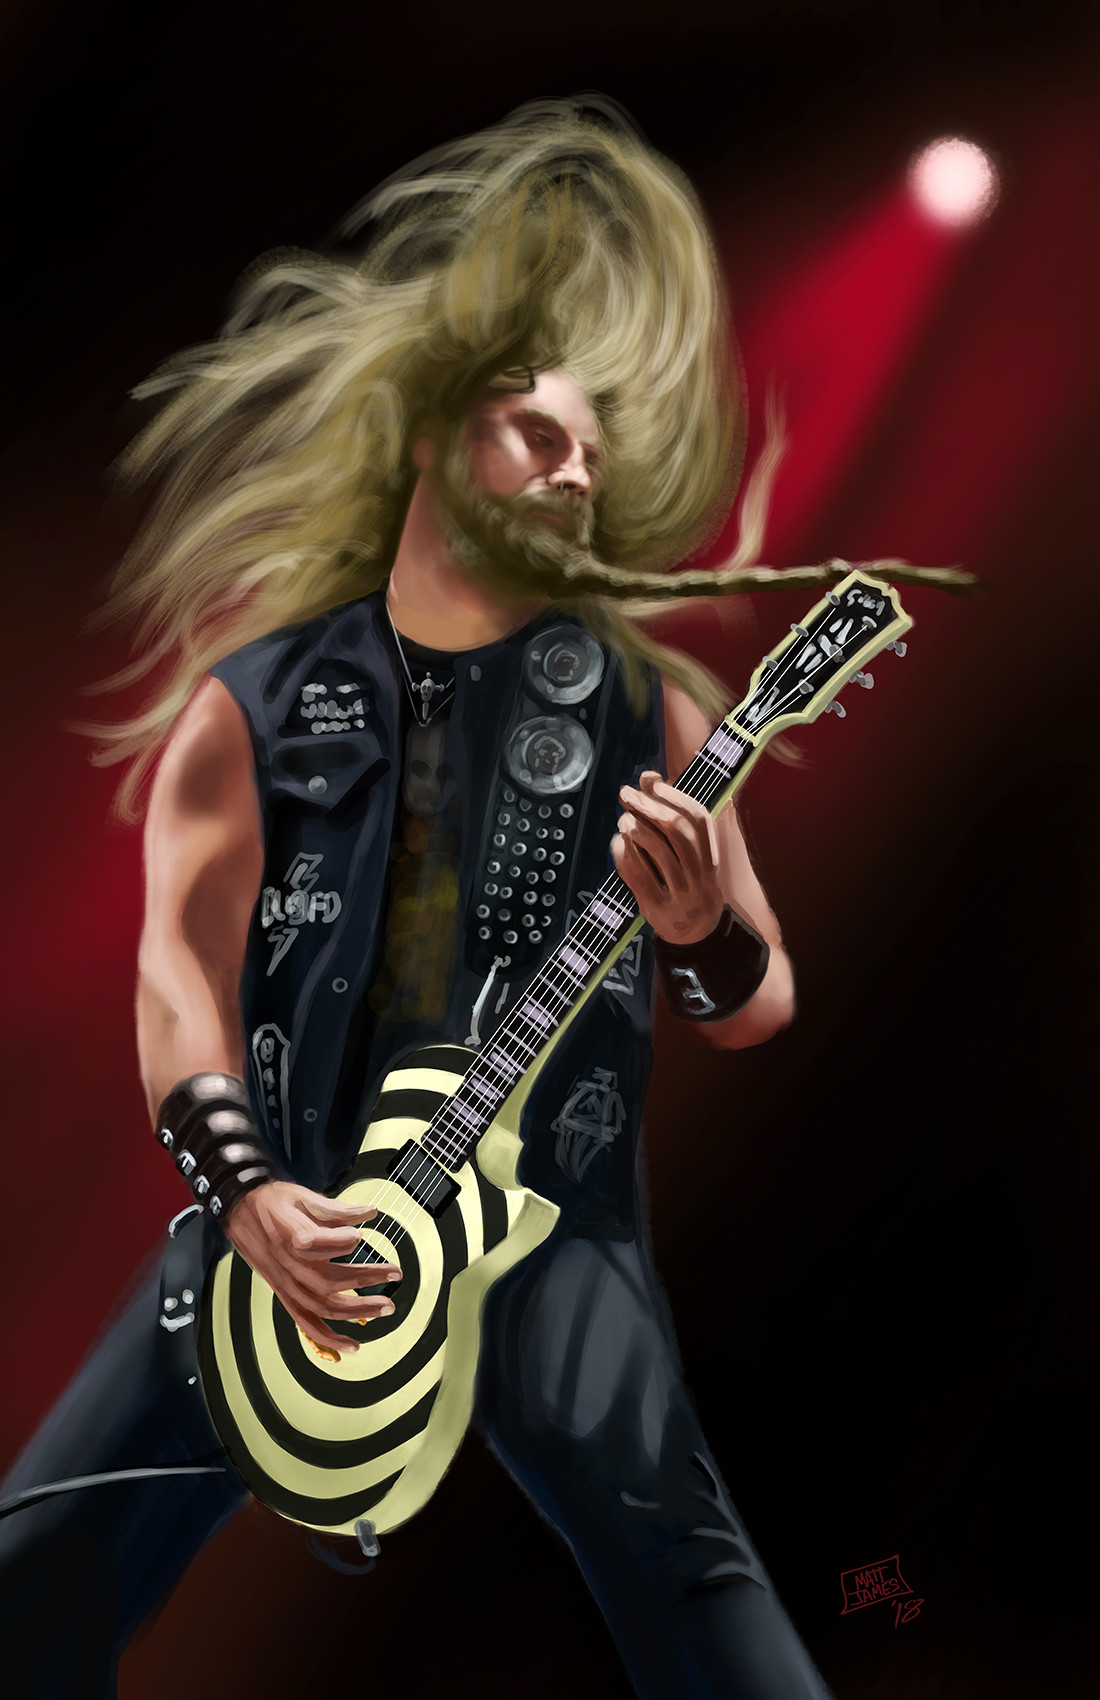 Matt james zakk wylde